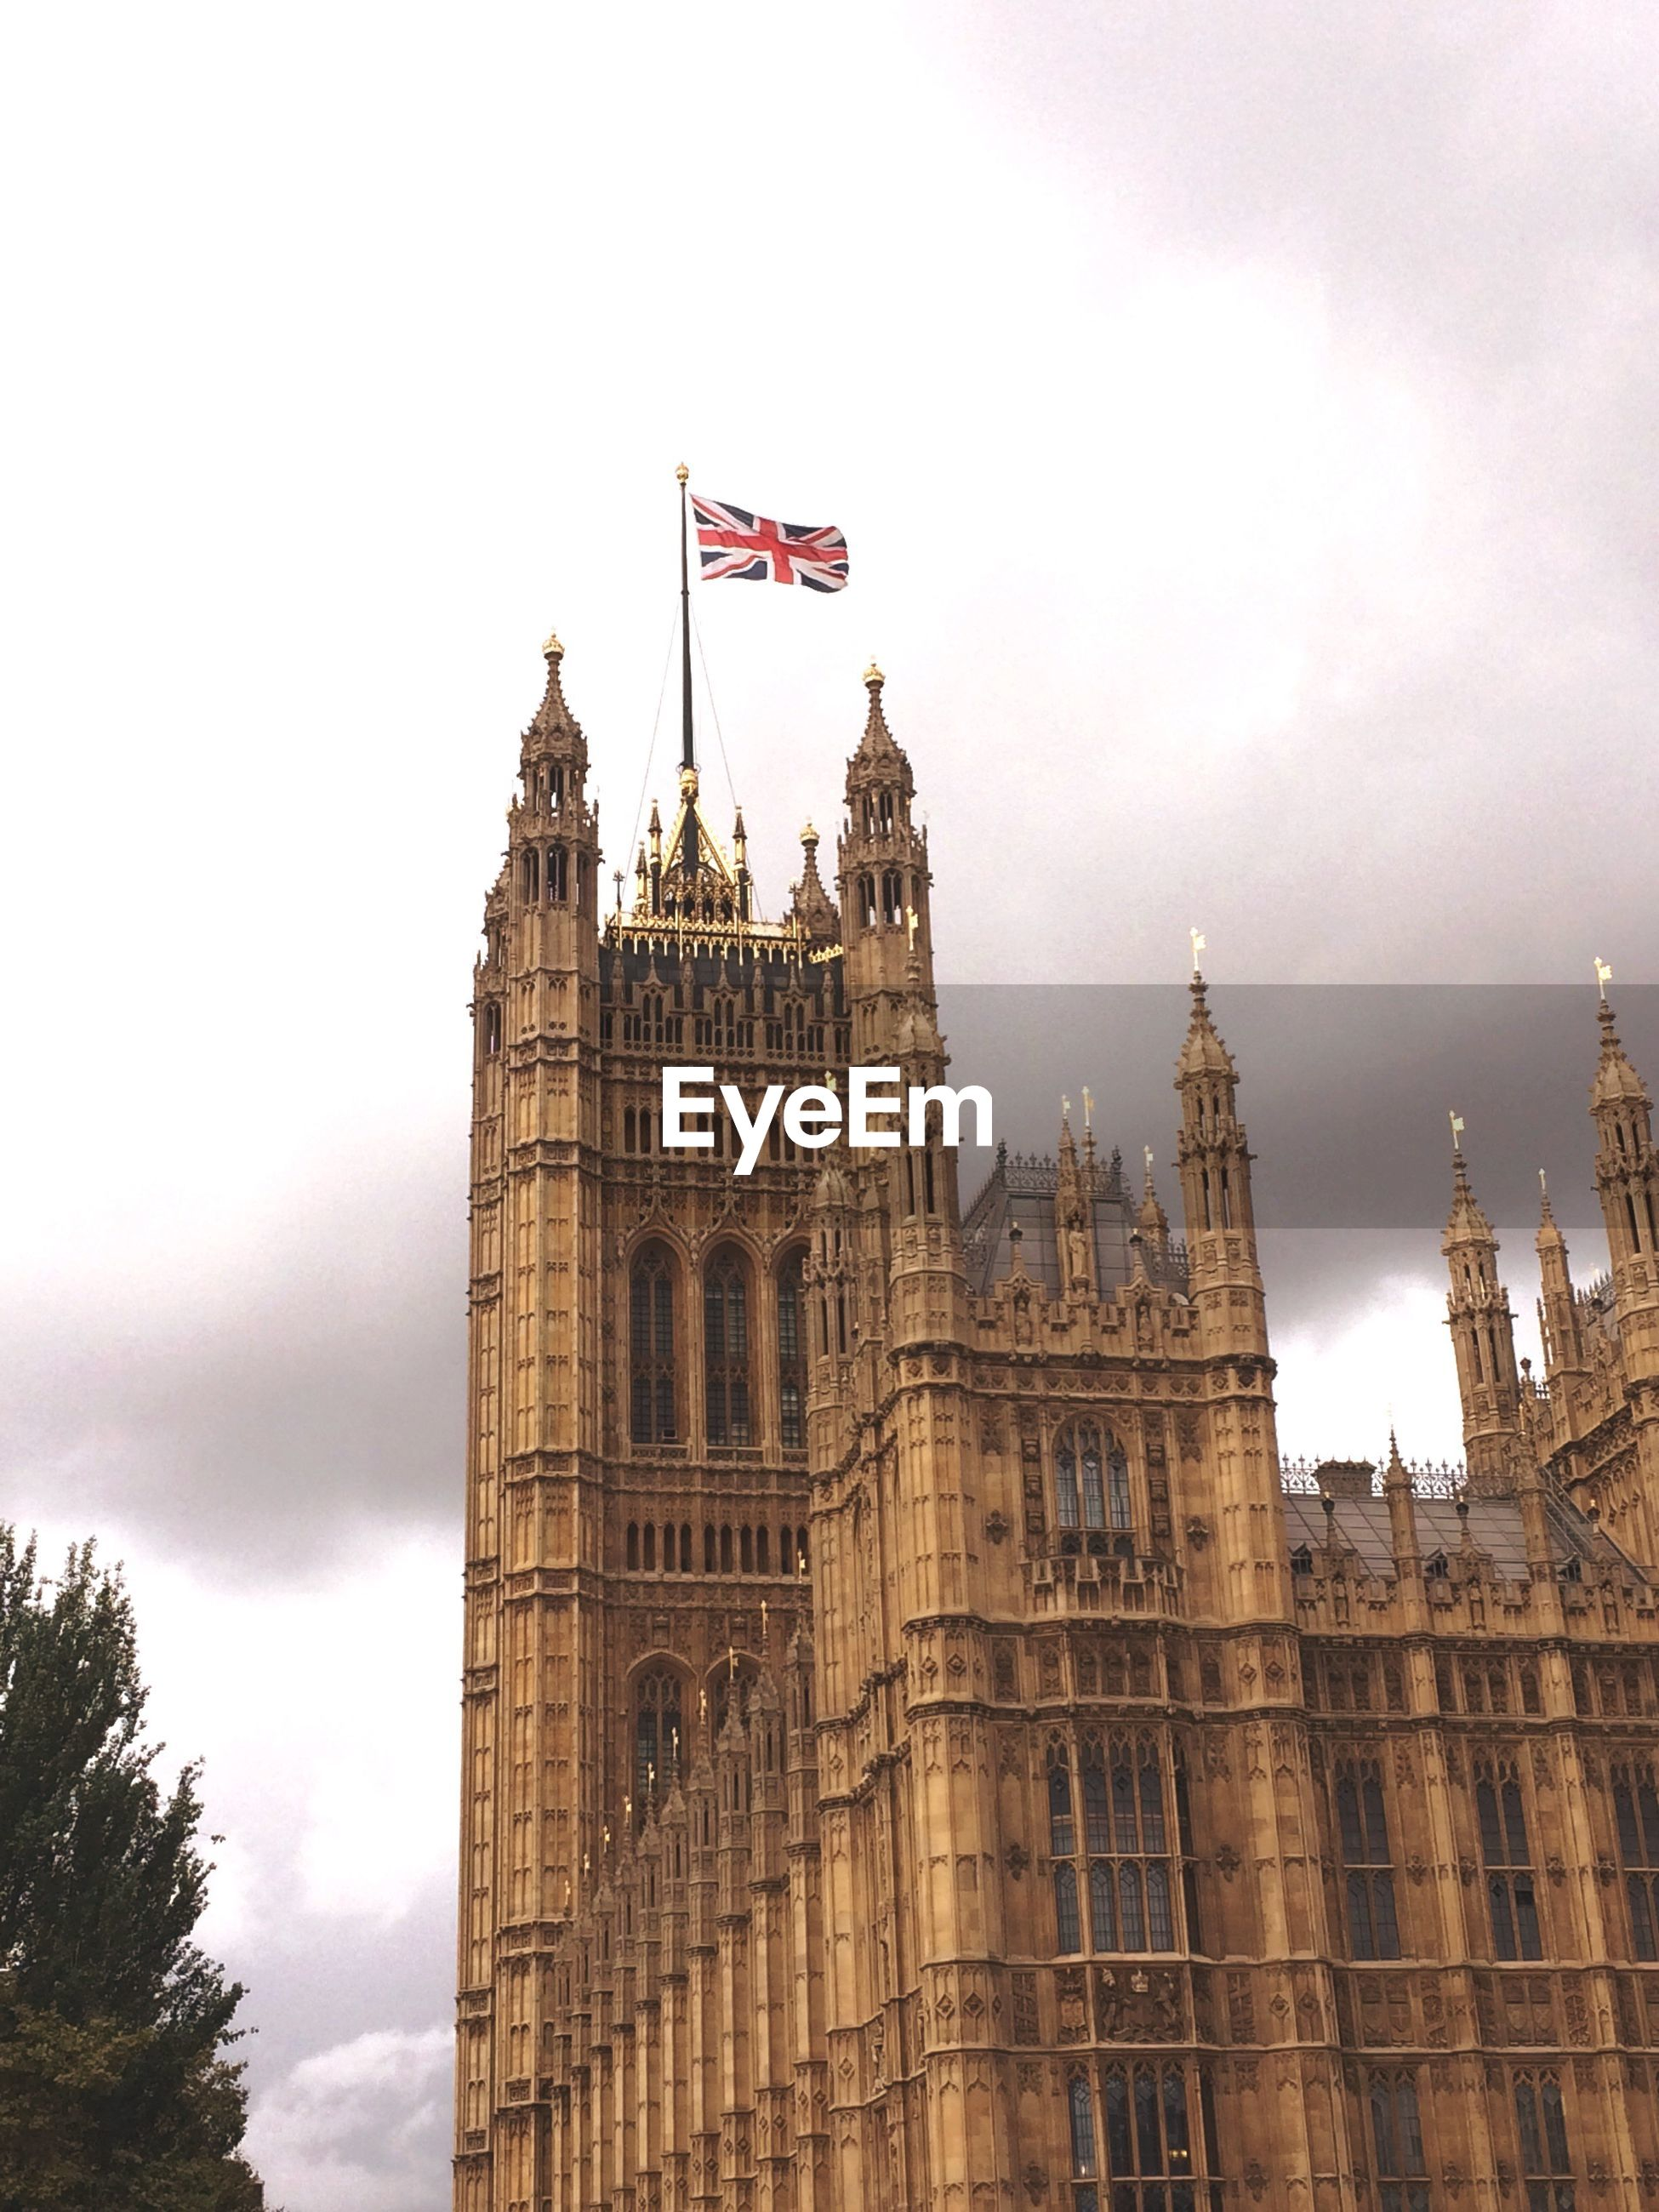 architecture, built structure, building exterior, big ben, sky, travel destinations, parliament building, history, government, government building, low angle view, cloud - sky, flag, clock tower, famous place, tourism, tower, gothic style, city, culture, international landmark, houses of parliament, cloud, atmospheric mood, city life, outdoors, tall - high, high section, capital cities, cloudy, spire